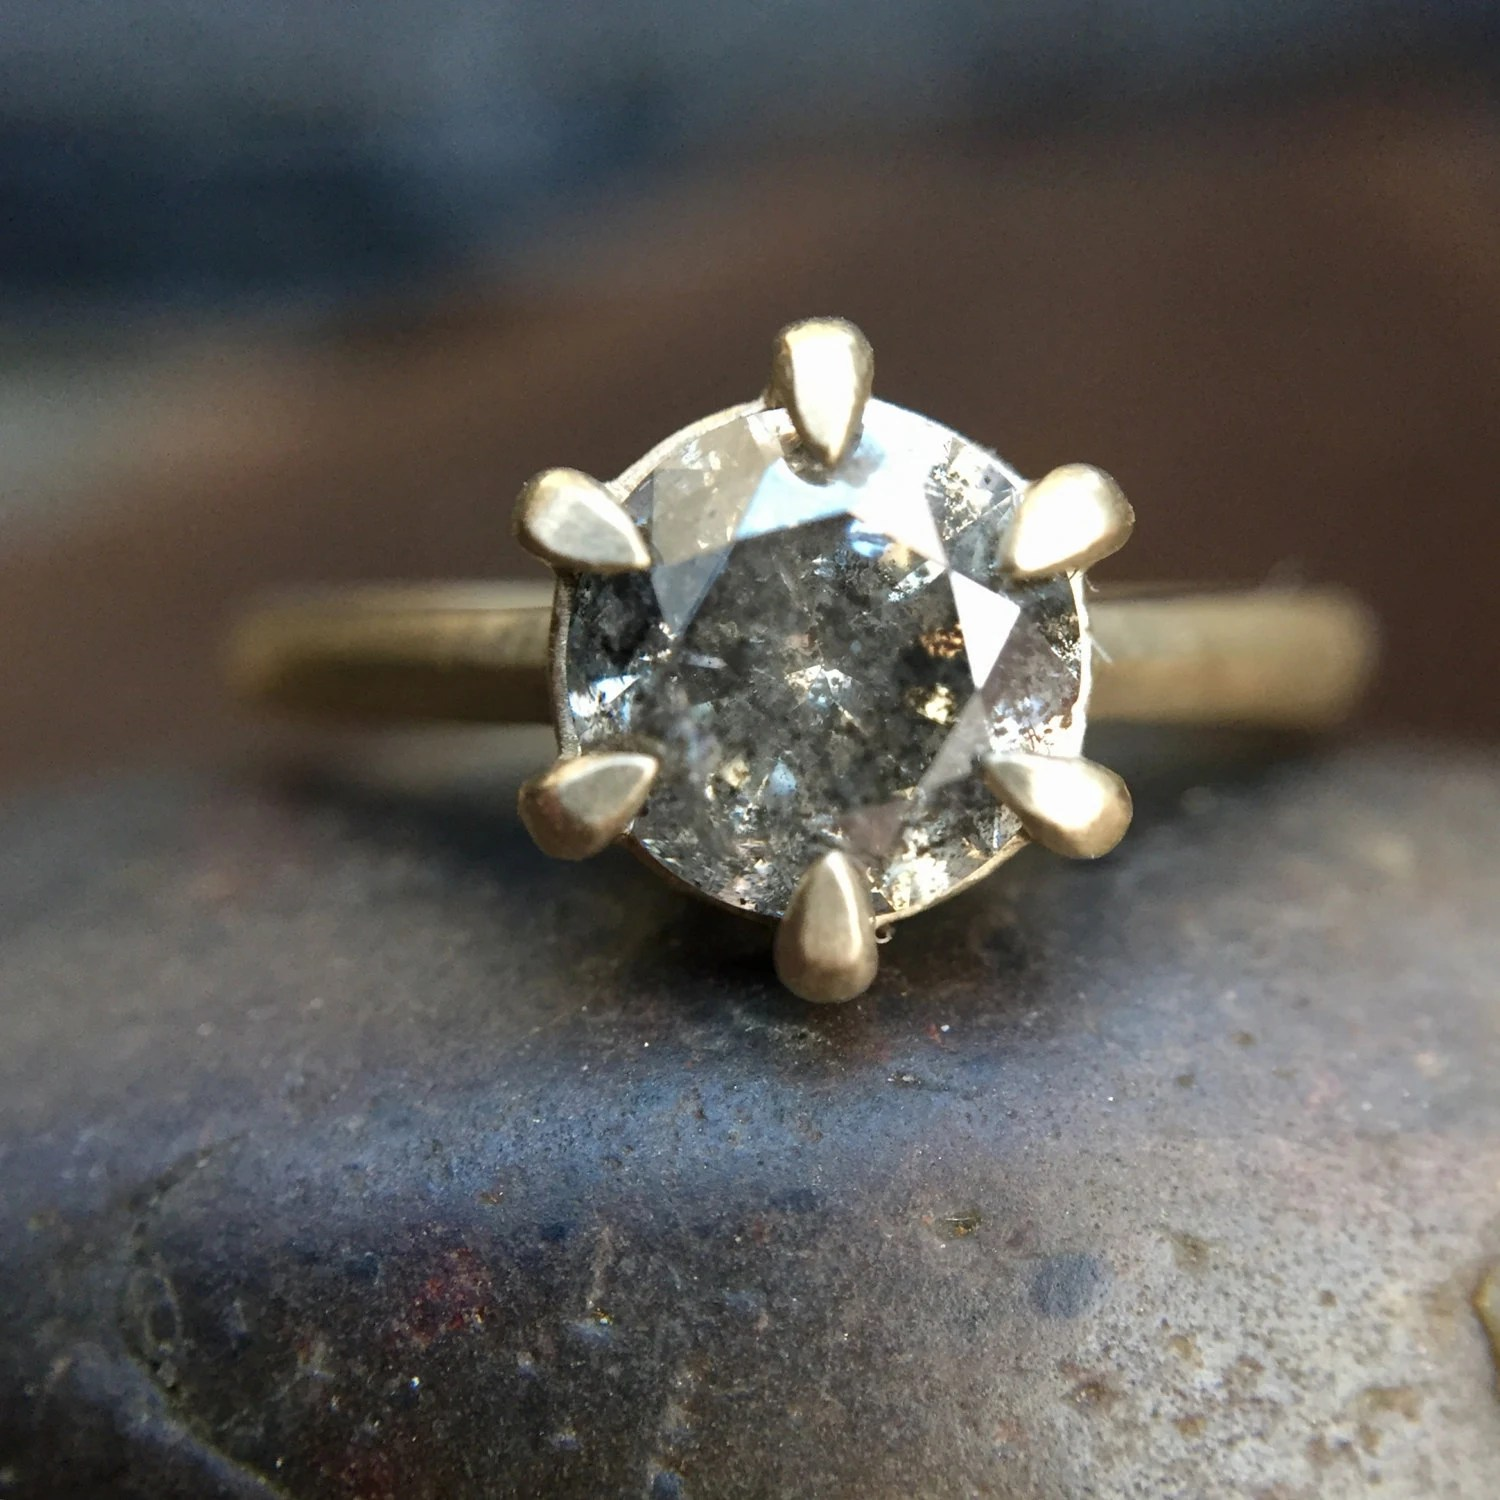 boho engagement ring bohemian wedding rings Pikes Solitaire Salt Pepper Diamond Cathedral Solitaire Six Prong 14K Ring Grey Diamond Ring Boho Diamond Ring Boho Engagement Ring